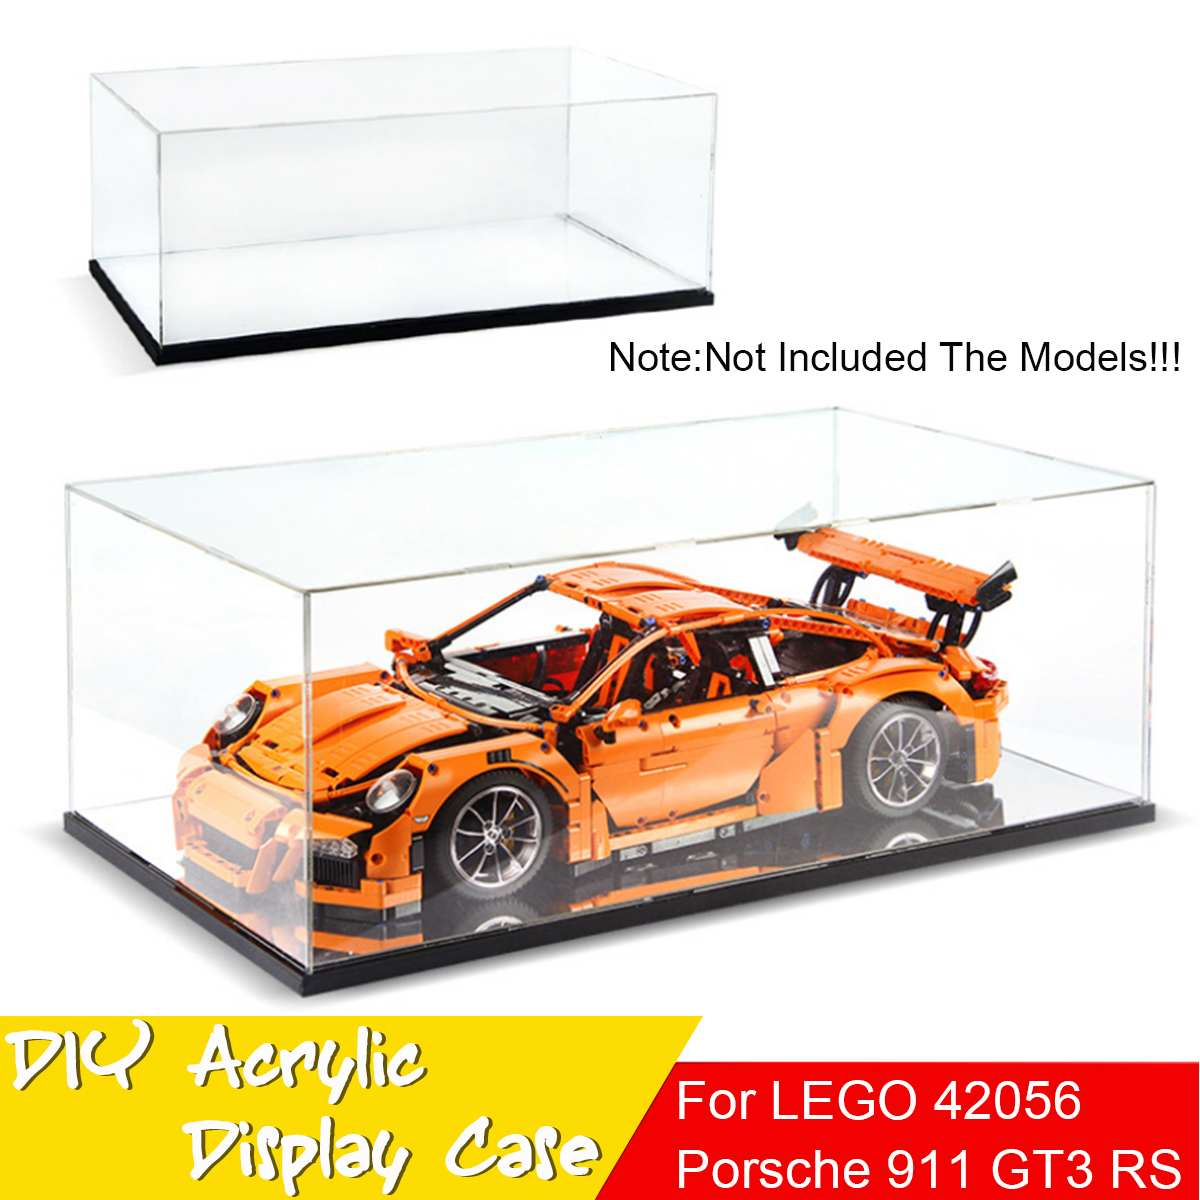 Us 56 33 Acrylic Display Case Box For Lego 42056 For Porsche 911 Gt3 Rs For Bugatti Chiron Technic Series Toy Bricks Model Not Included In Blocks